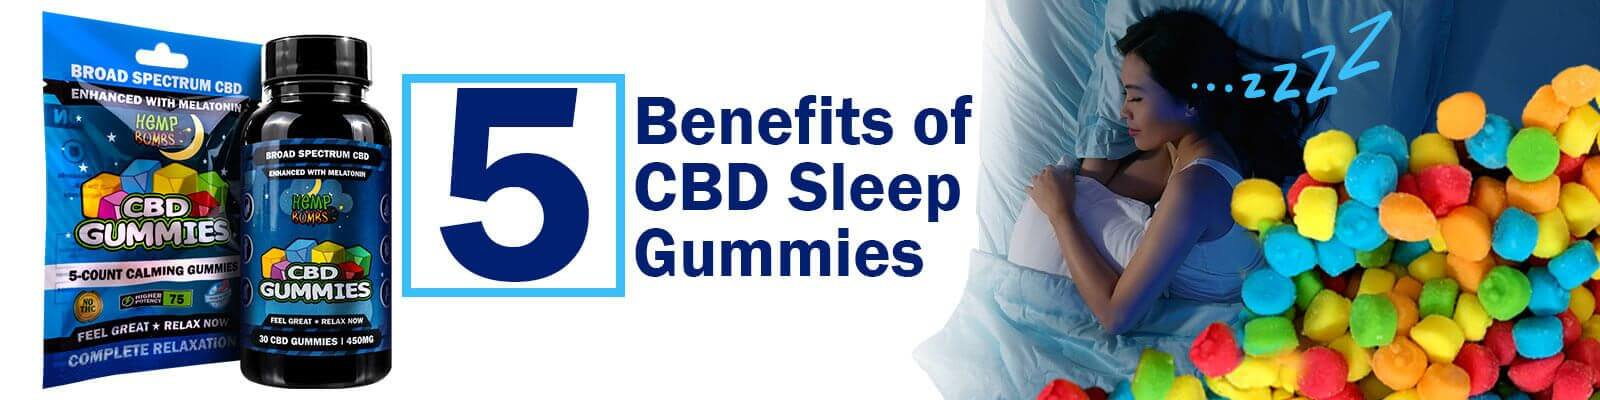 CBD Sleep Gummies Benefits